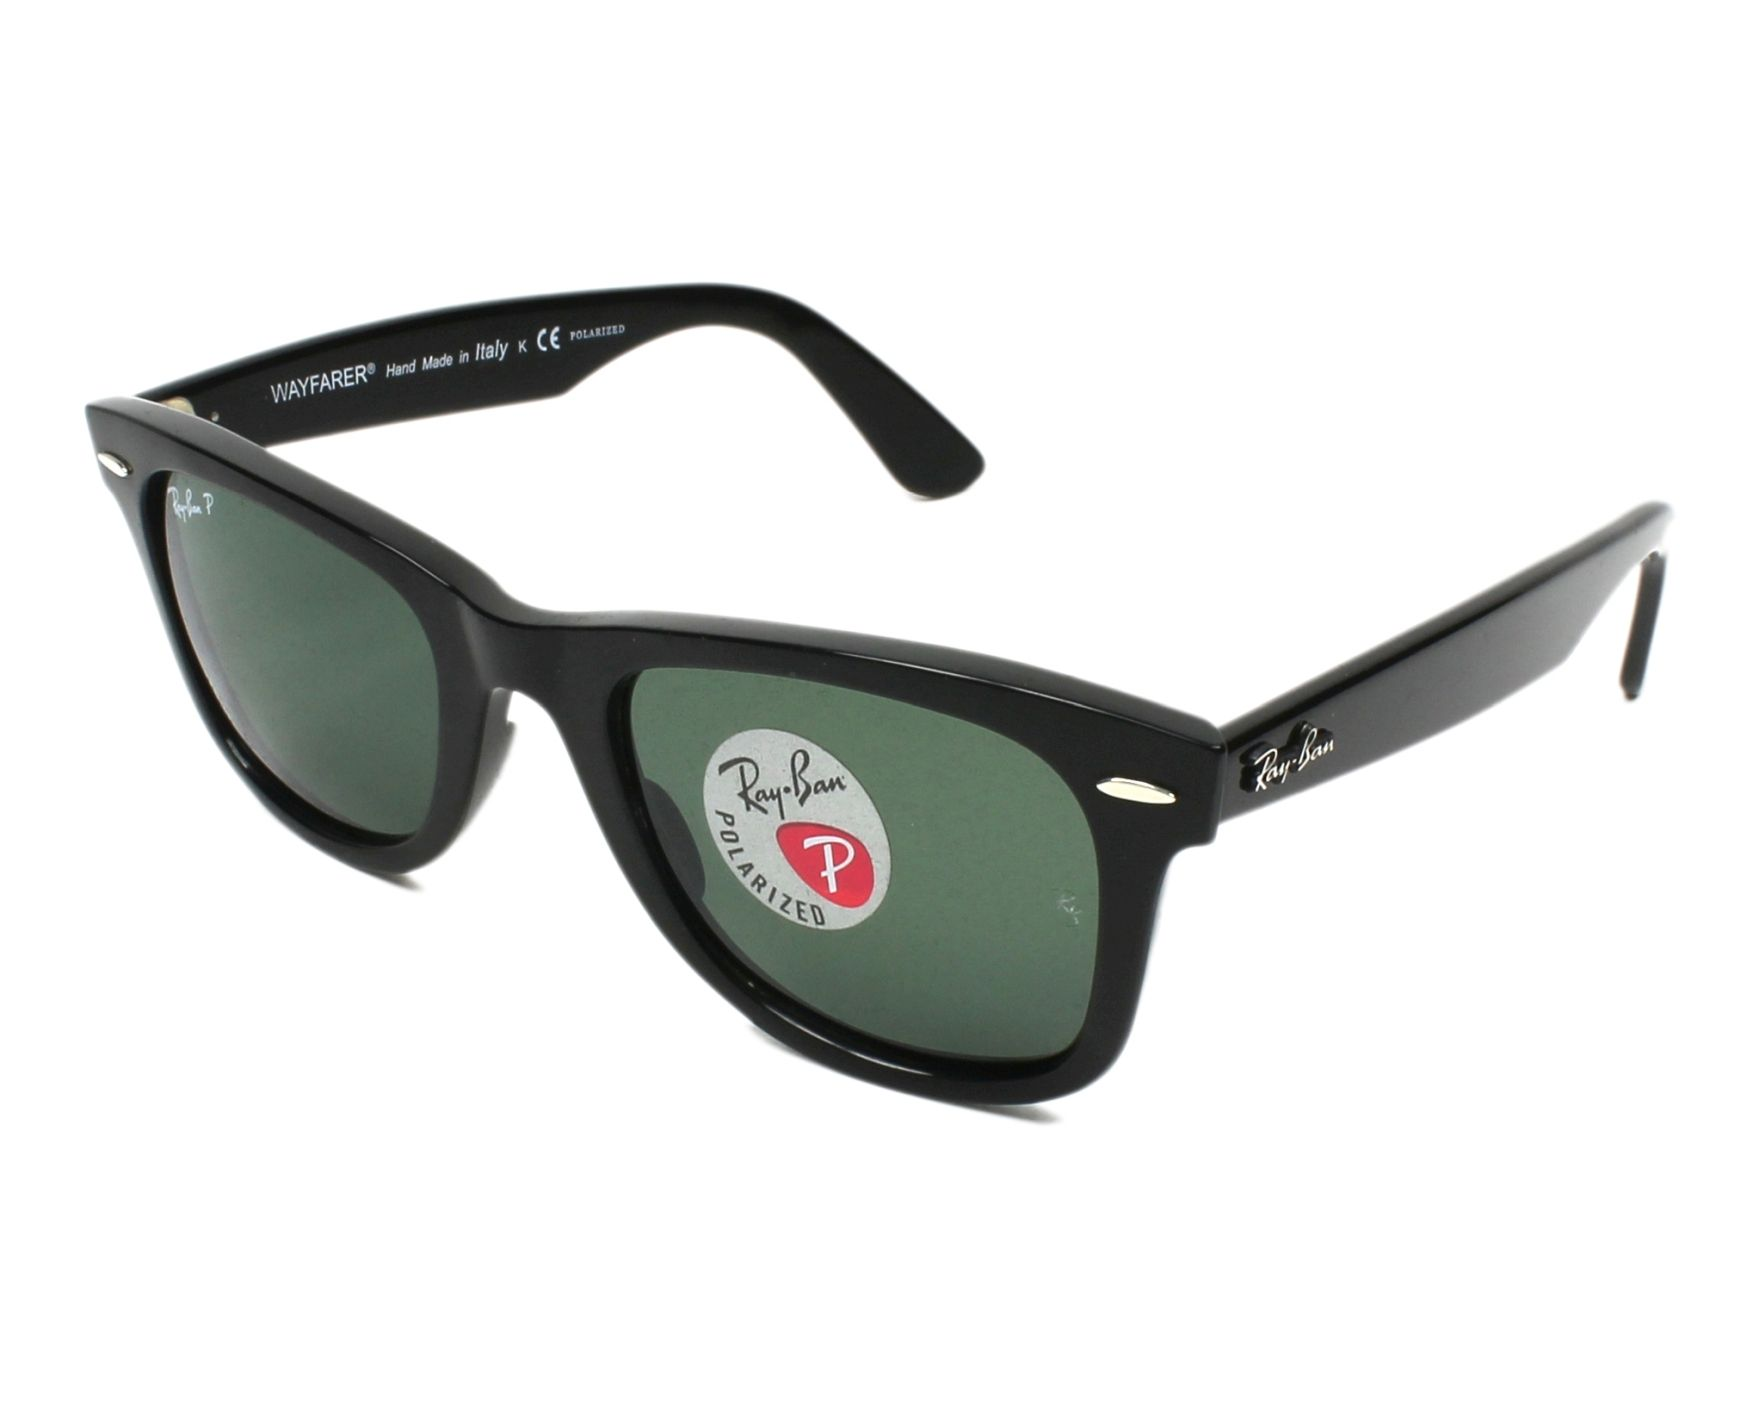 22586b0e2d Sunglasses Ray-Ban RB-4340 601 58 50-22 Black profile view